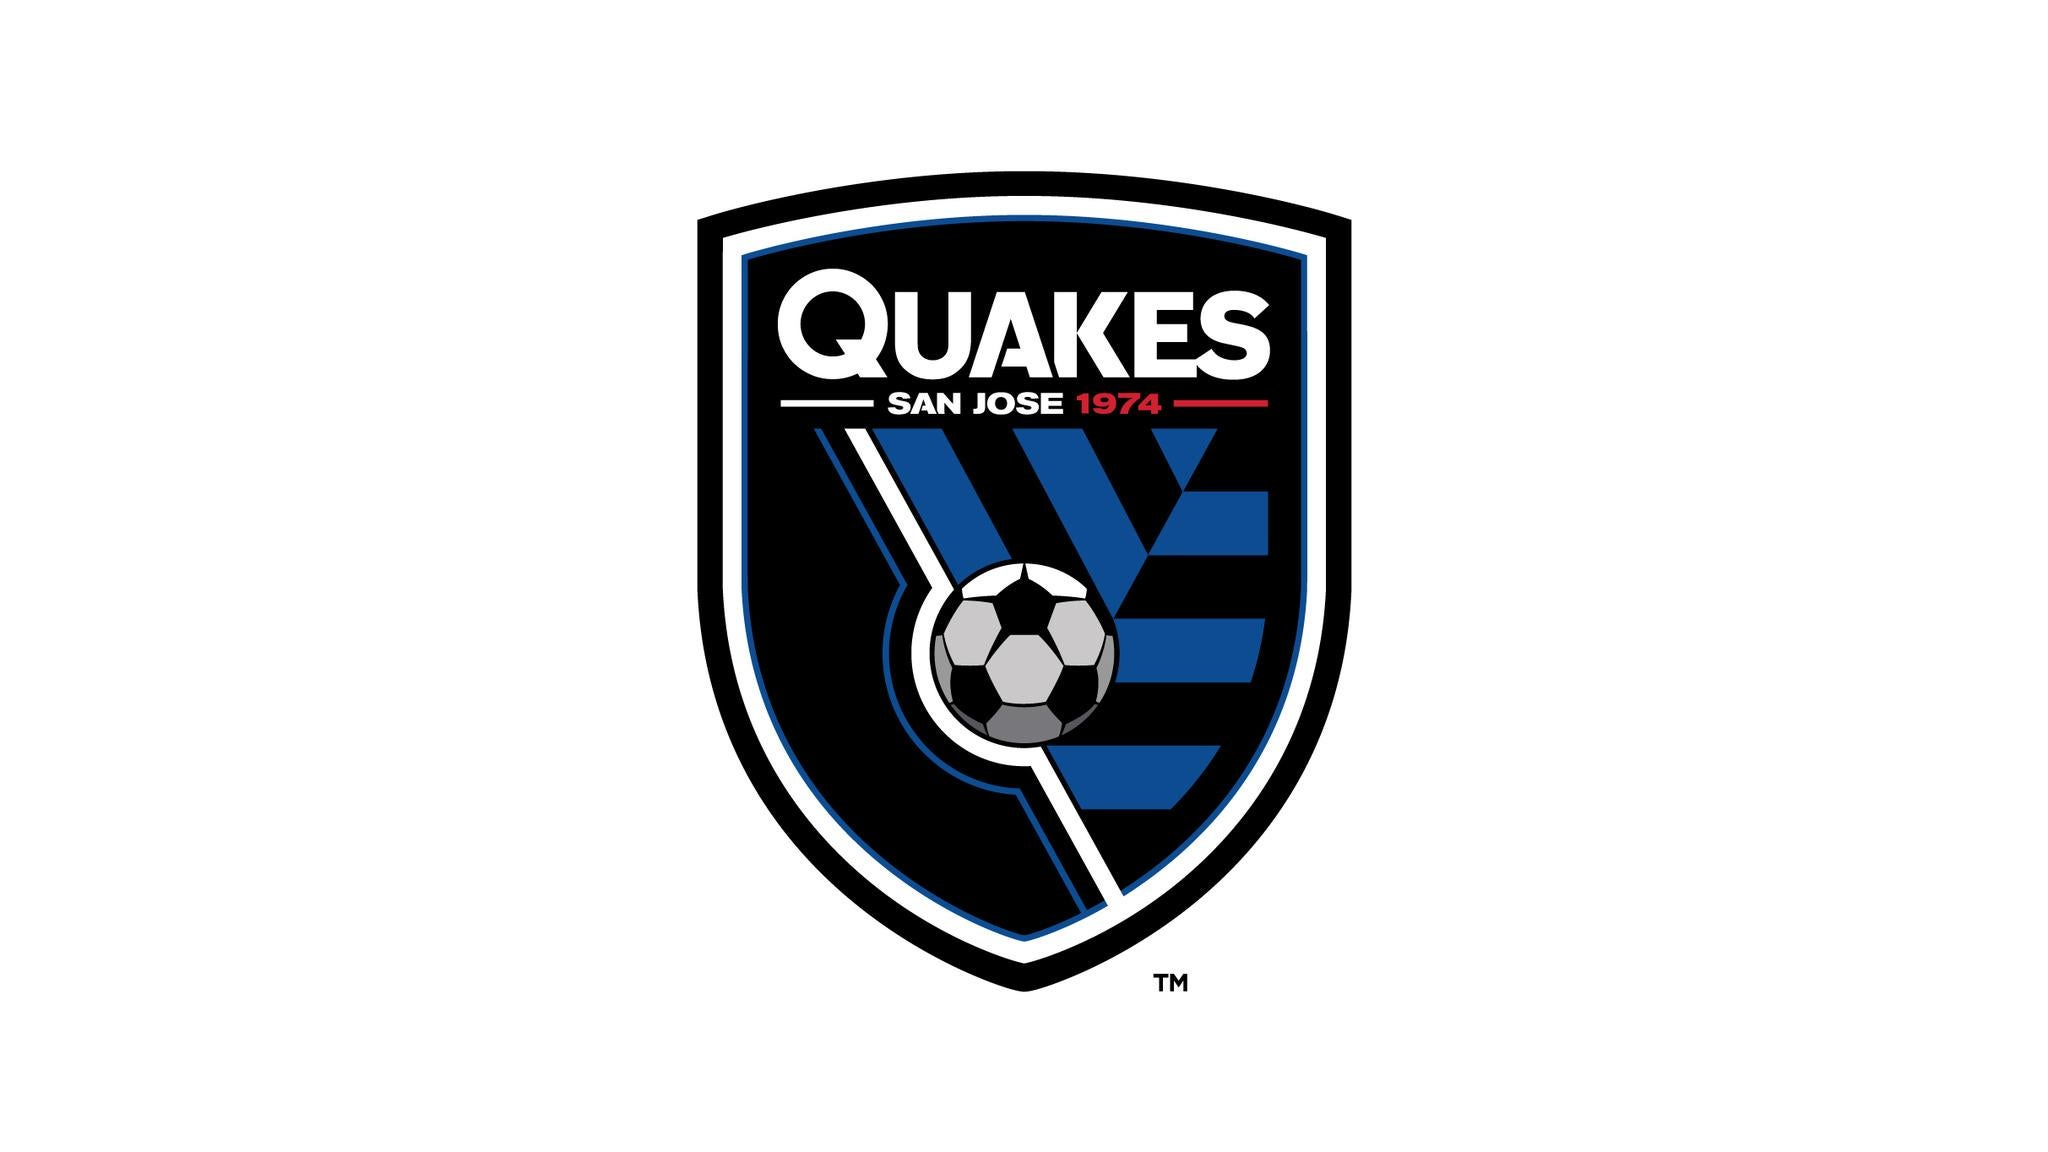 San Jose Earthquakes vs. Portland Timbers at Avaya Stadium